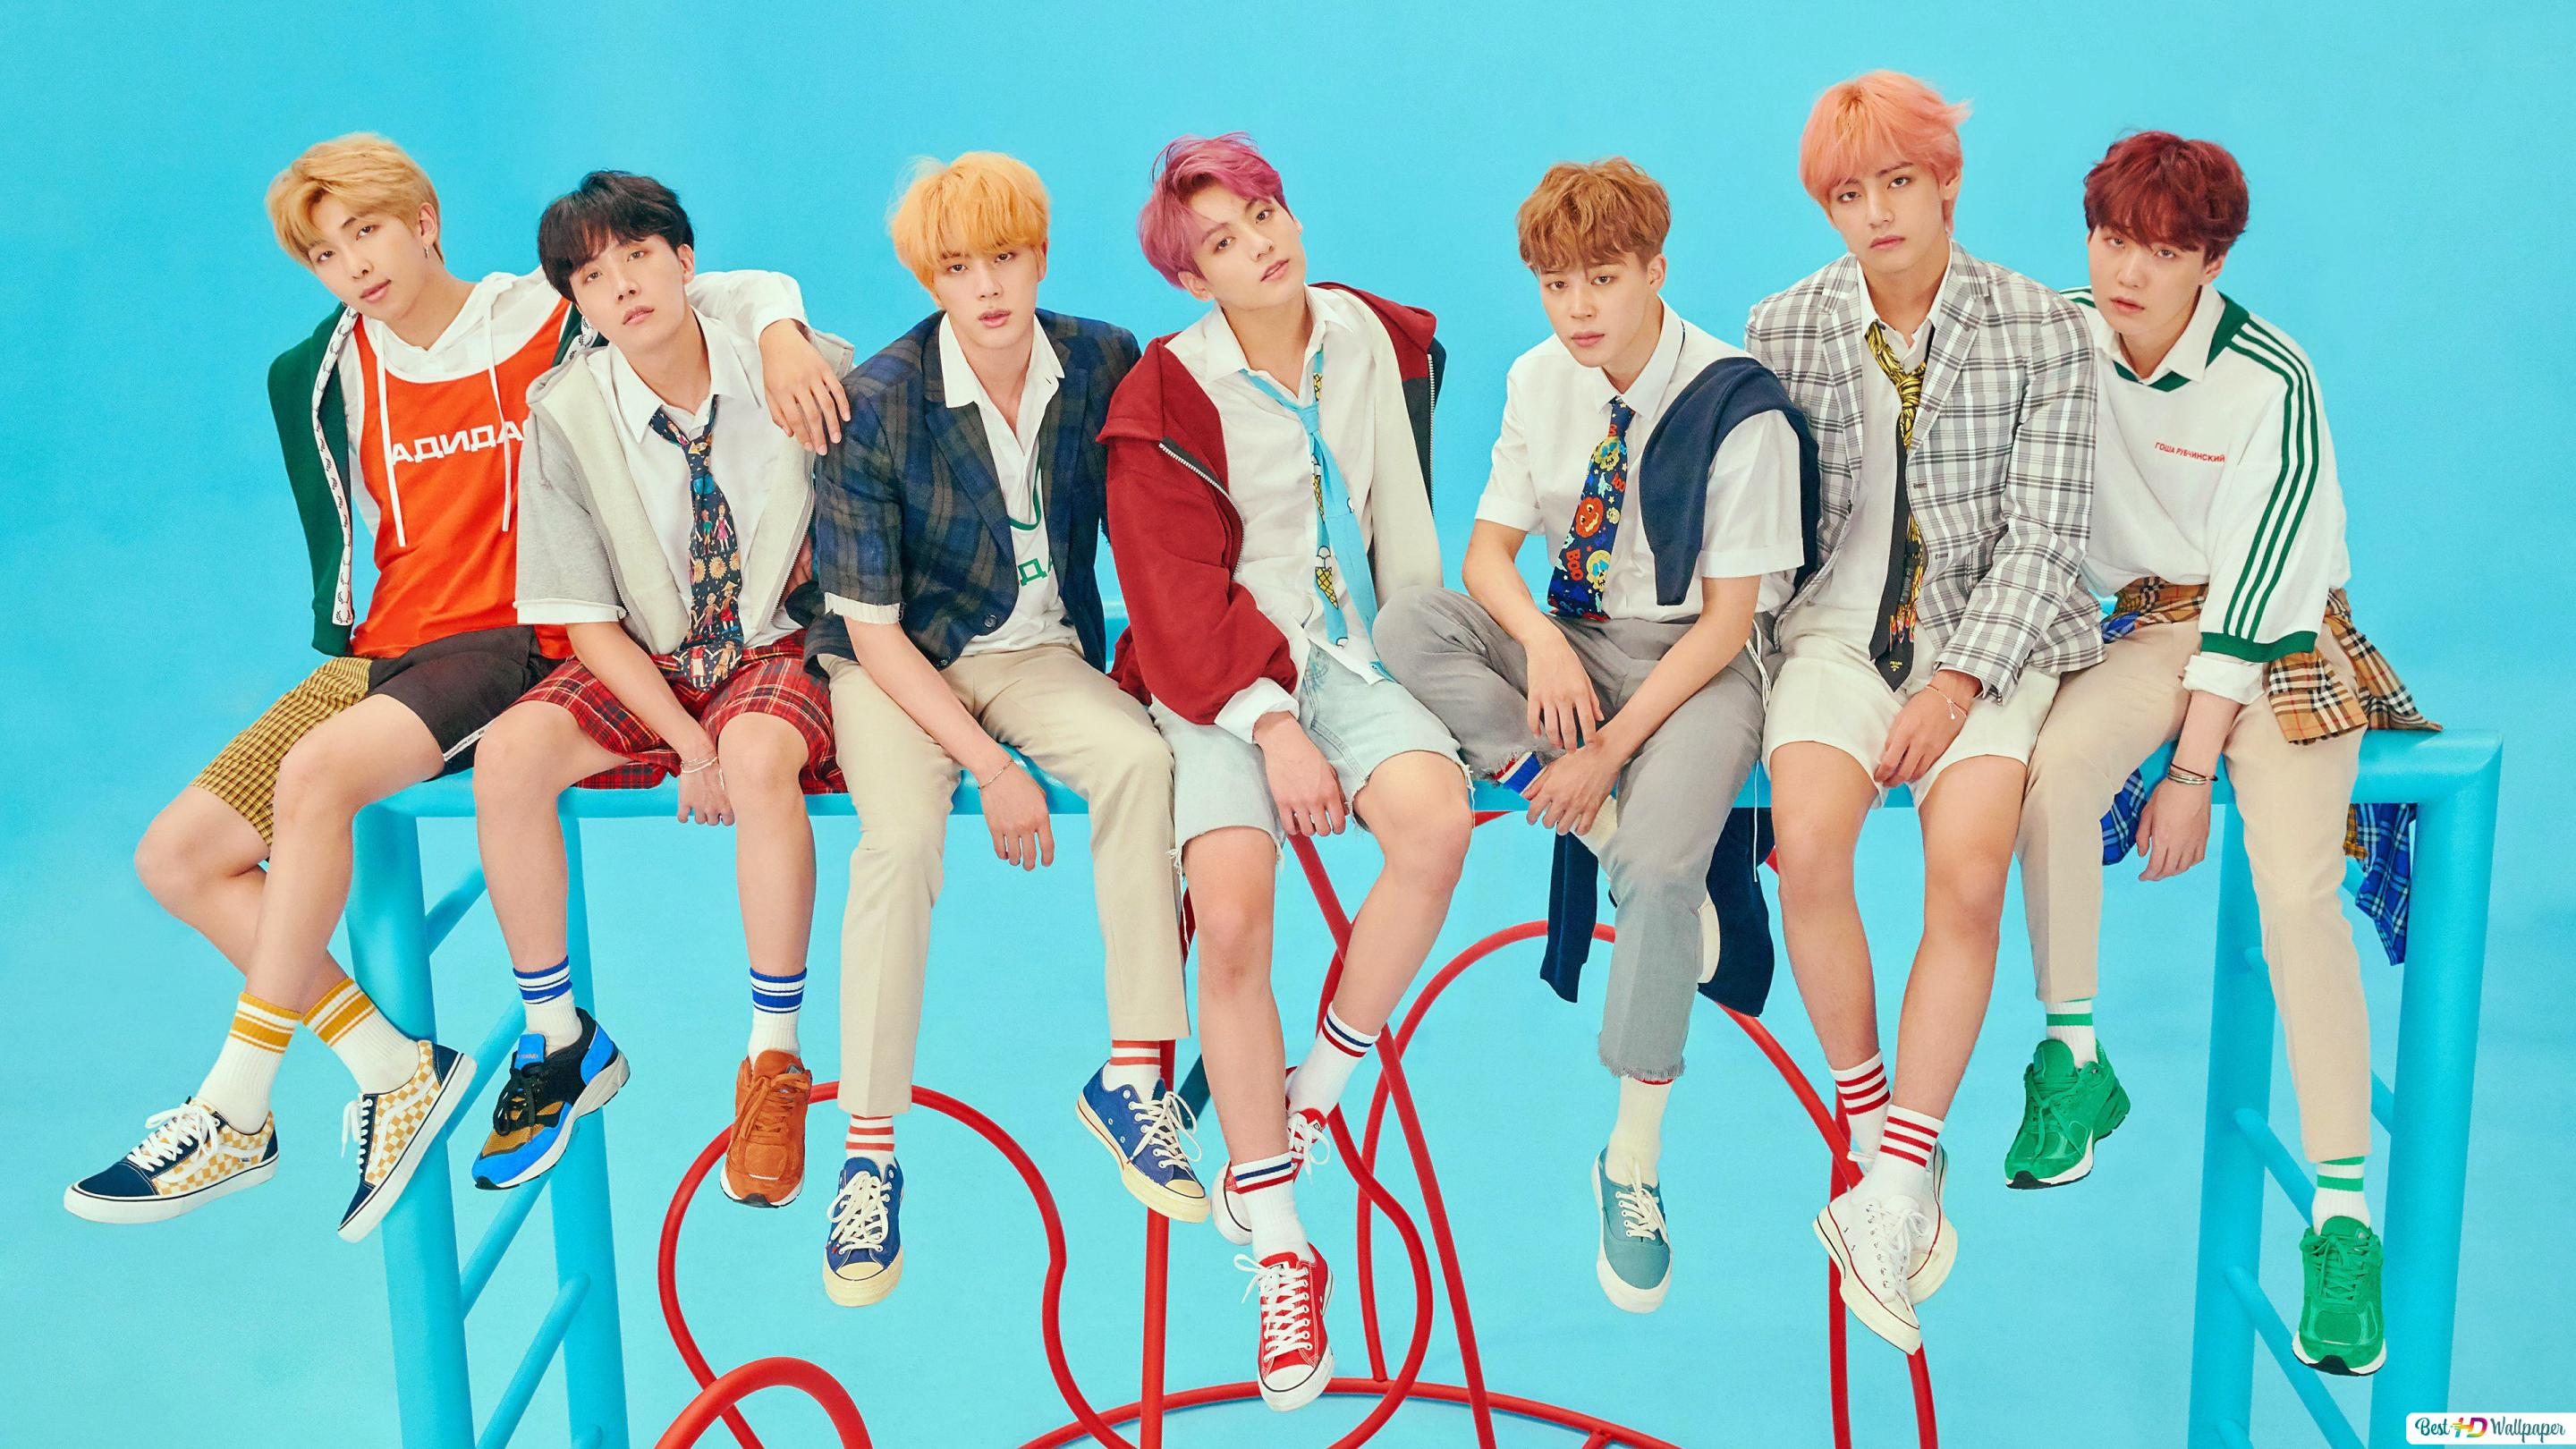 bts bangtan boys members in love yourself answer mv wallpaper 2880x1620 53620 52